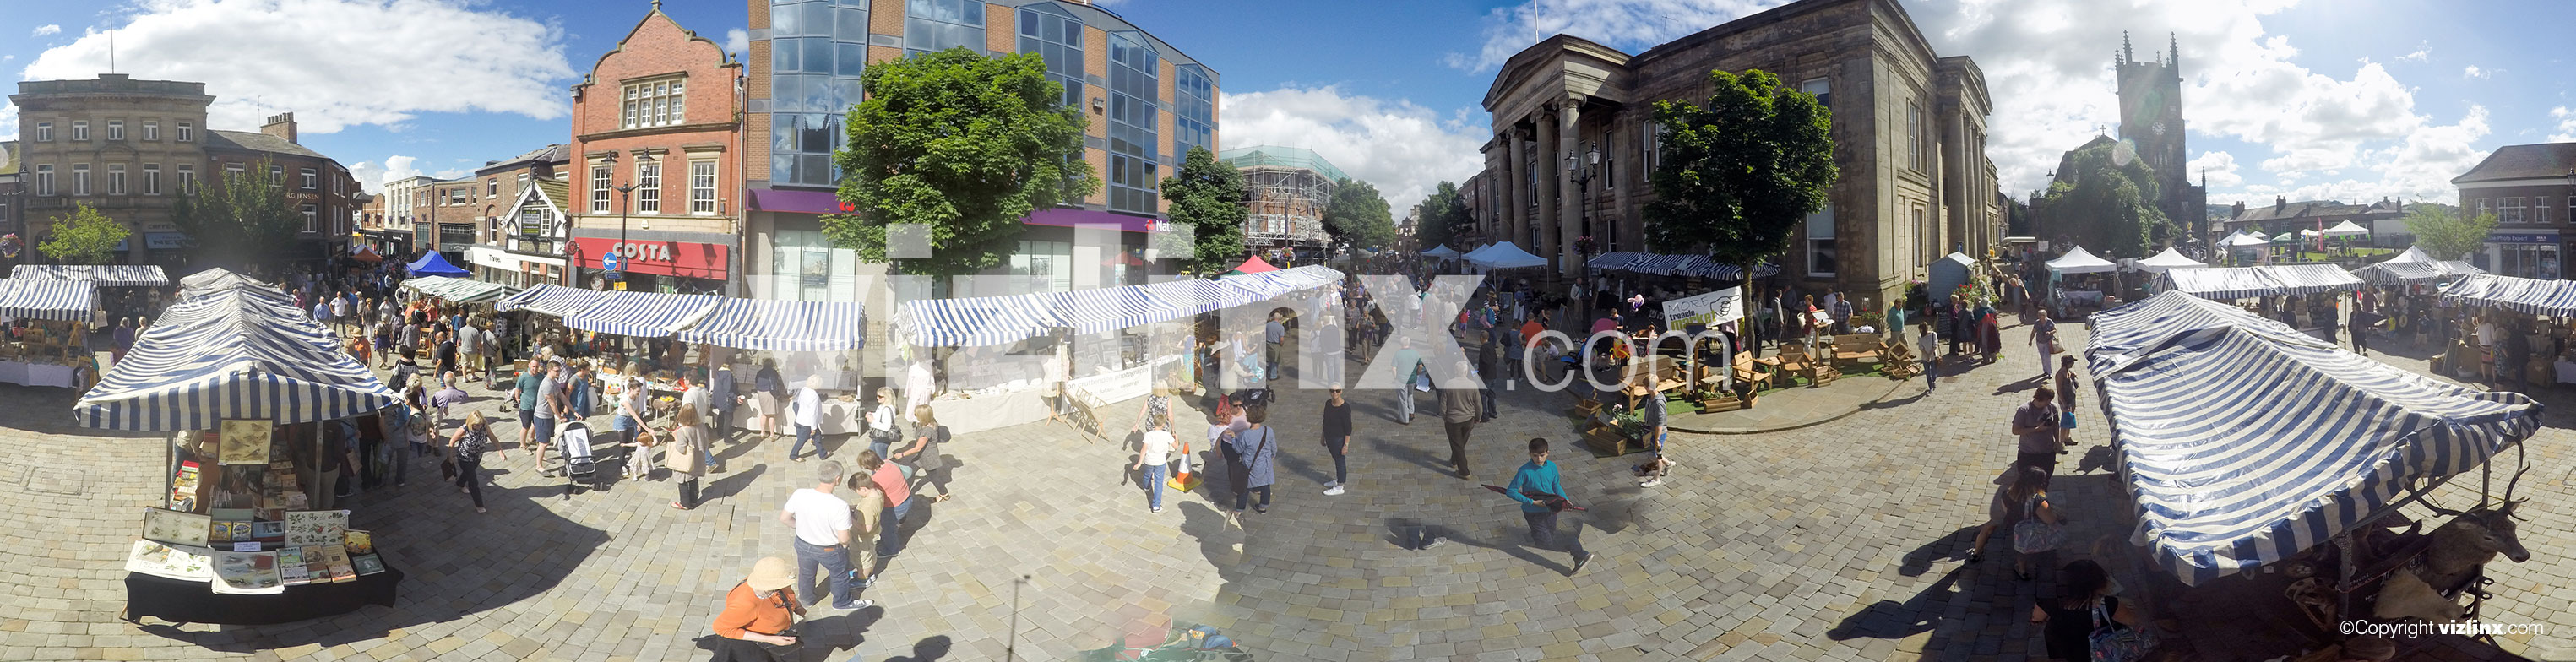 360 panorama of Treacle Market Macclesfield